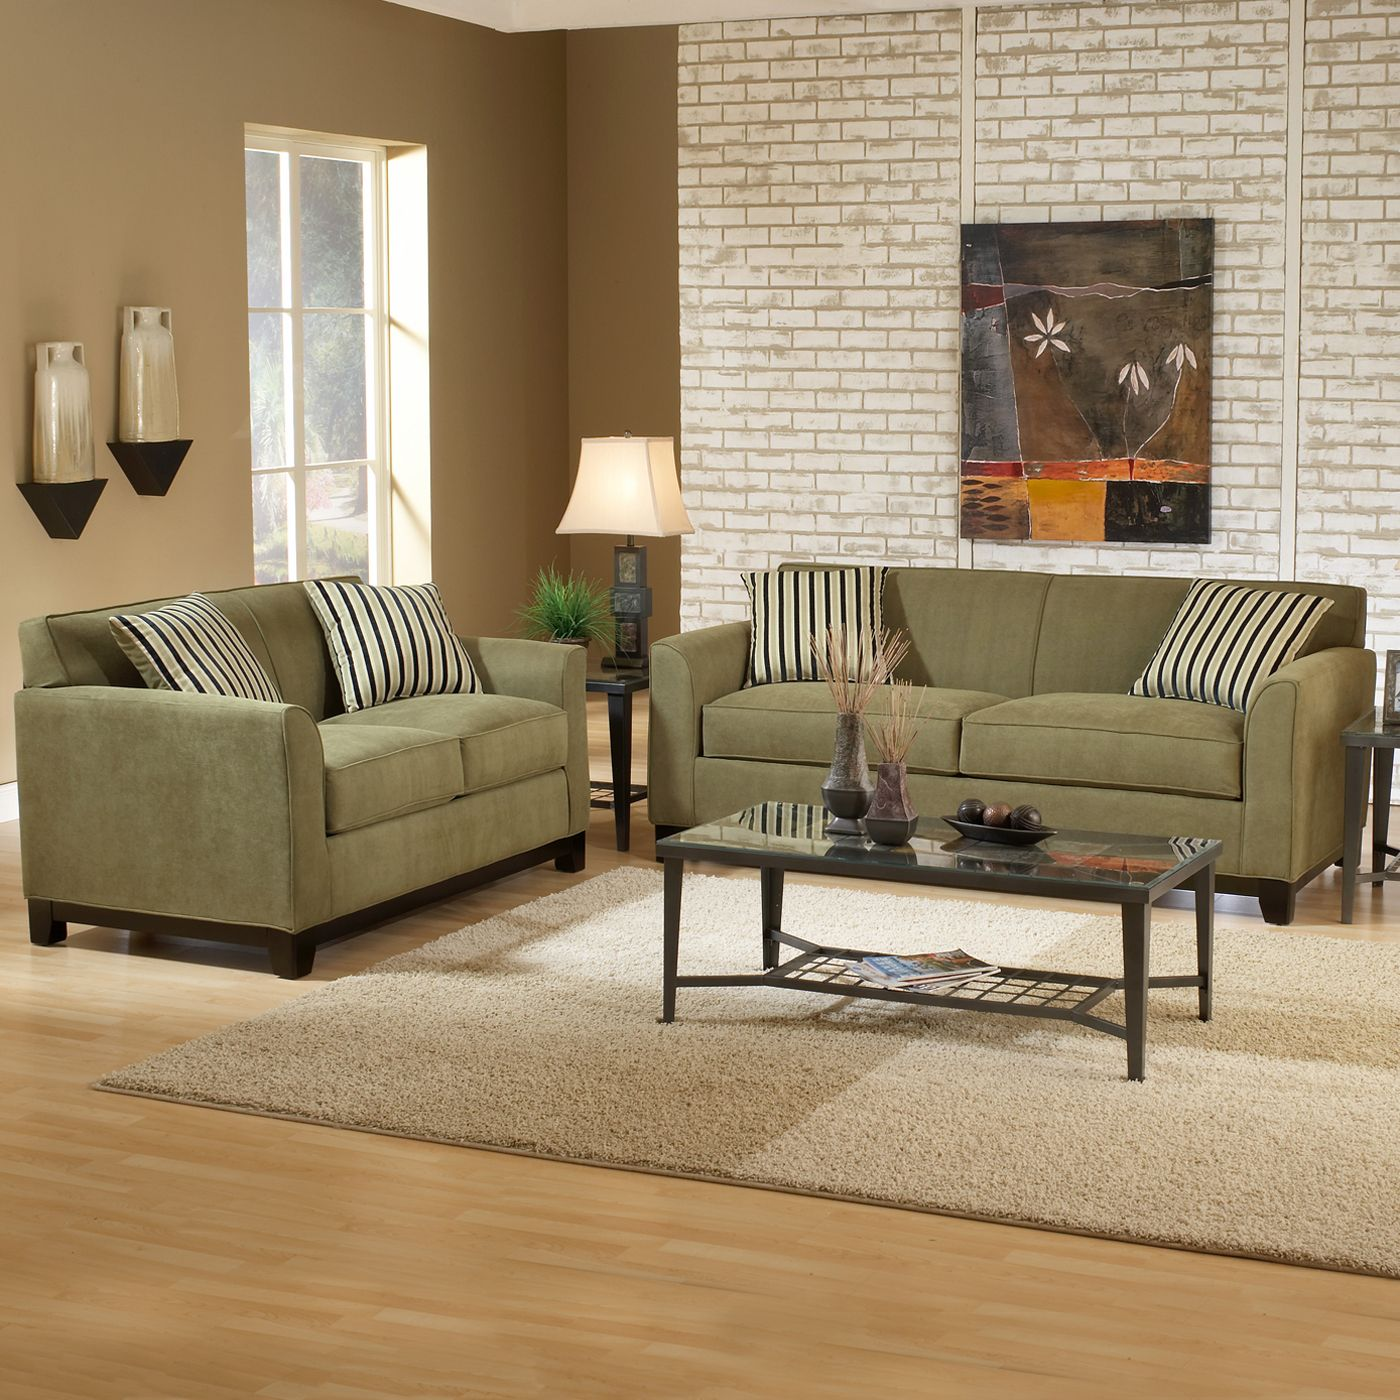 sage green couch, love the flooring too | Our house ...